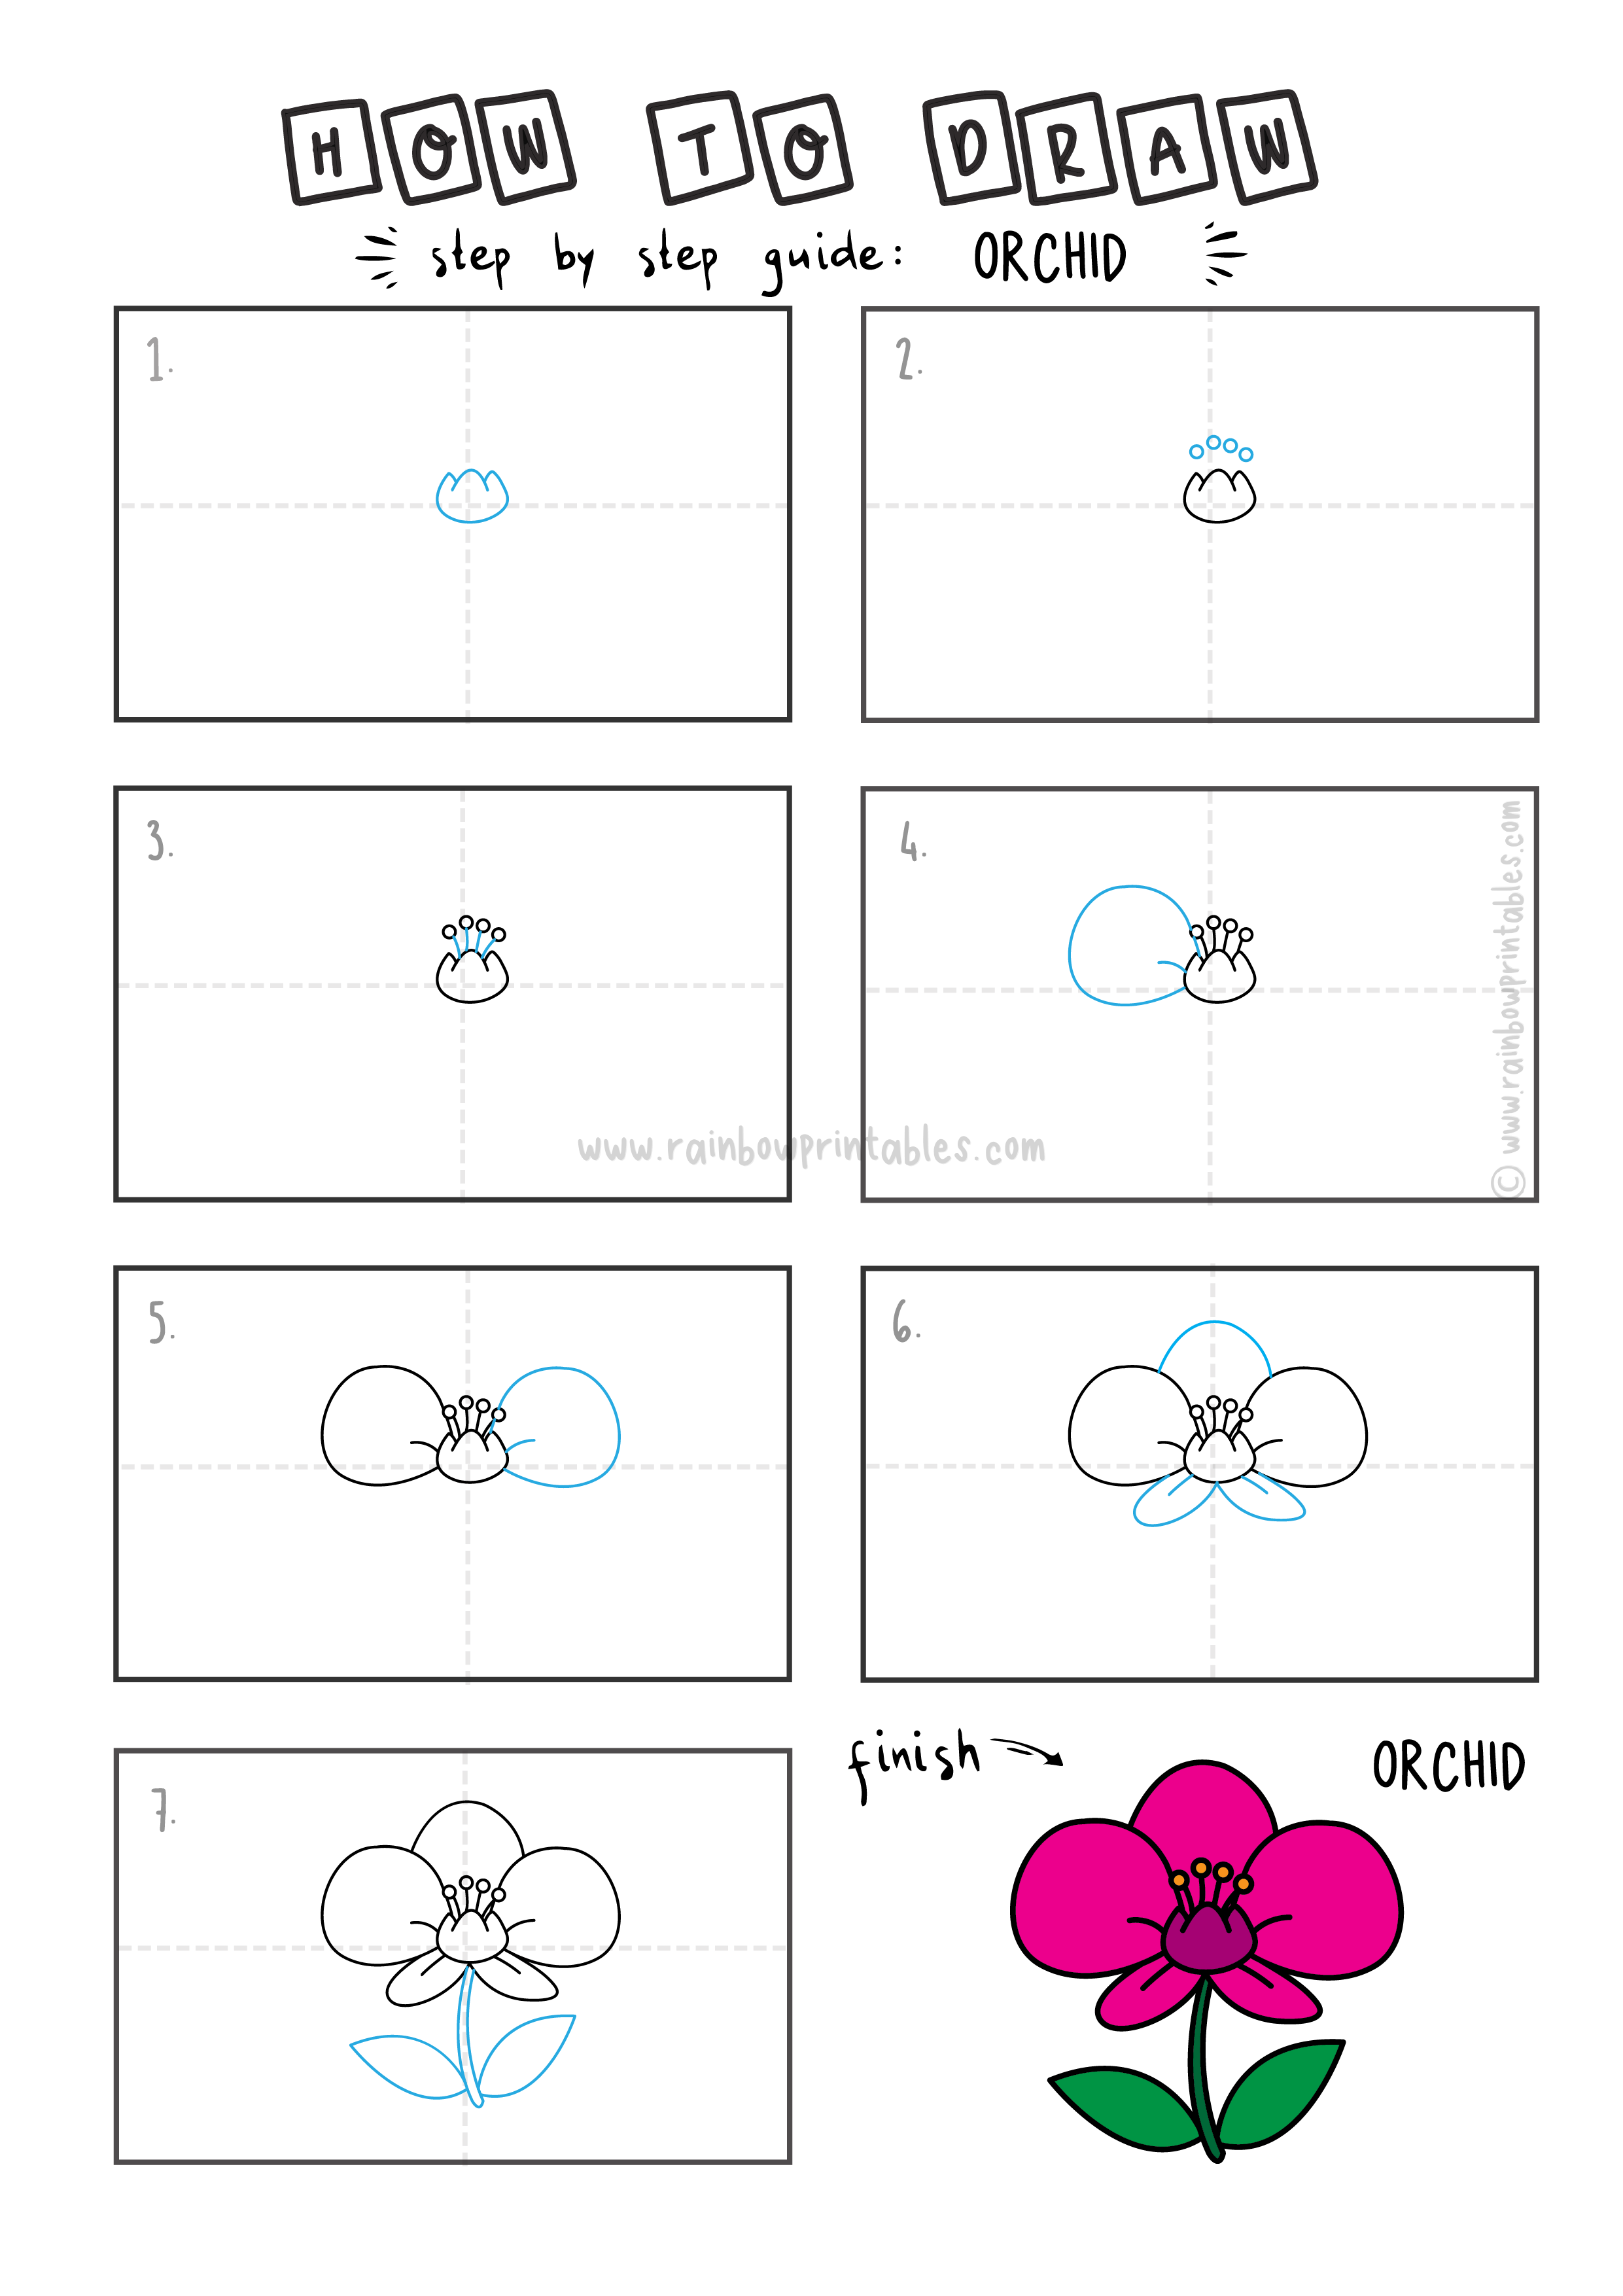 How To Draw Tutorials For Kids ORCHID FLOWER ANIMAL Step by step for kids easy simple guide